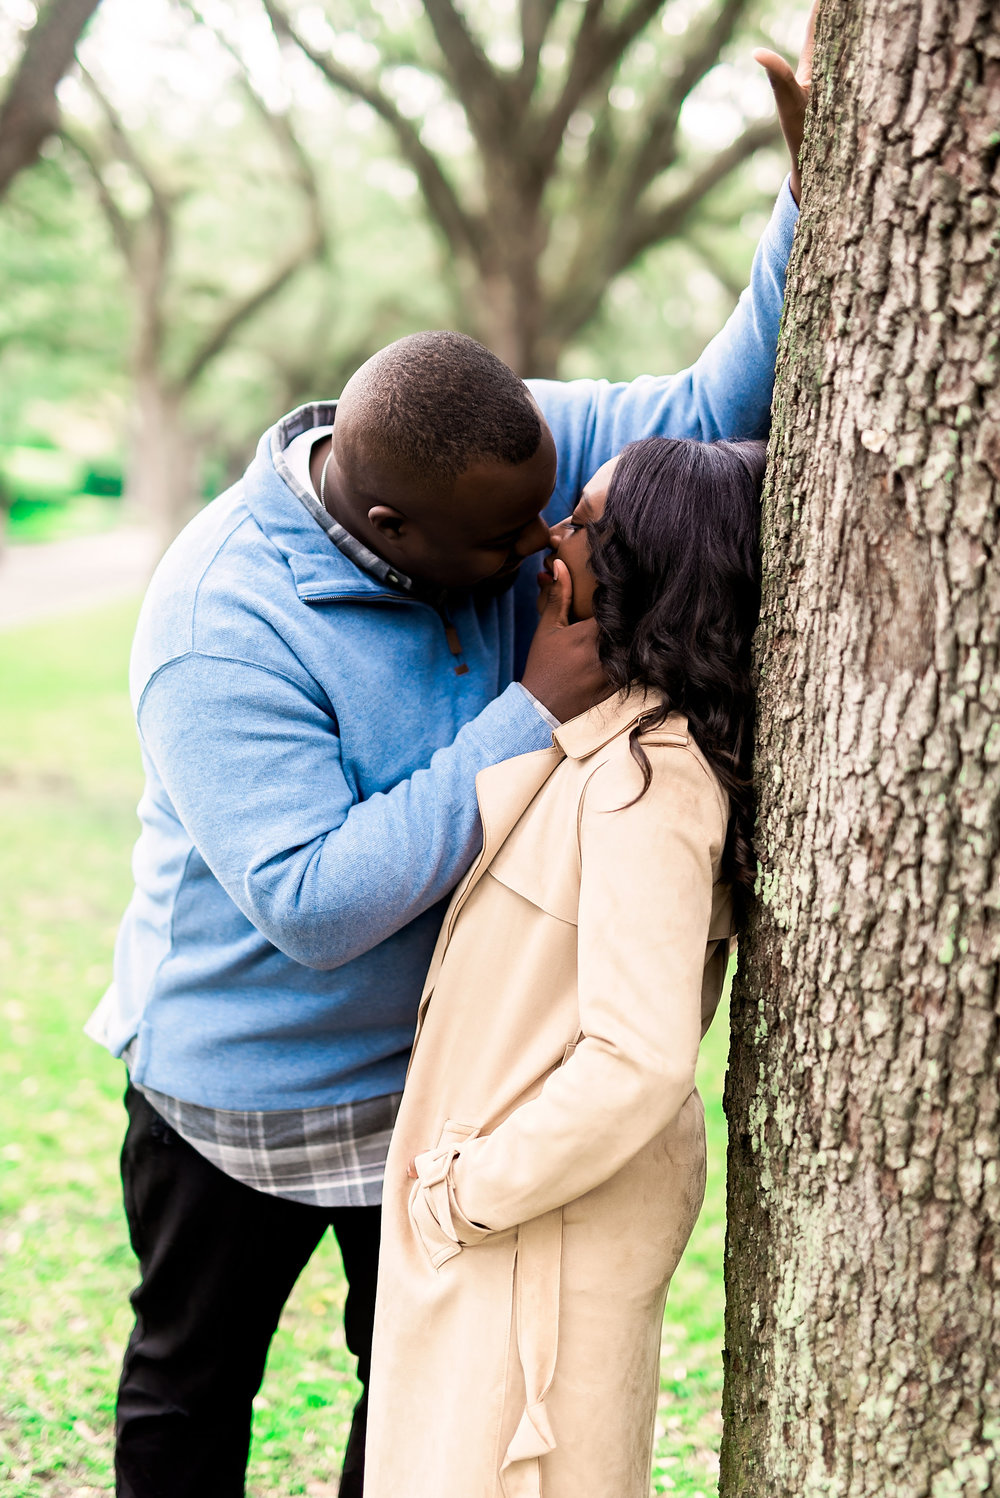 Evan-Meghan-Pharris-Photography-engagement-Photoshoot-12.jpg